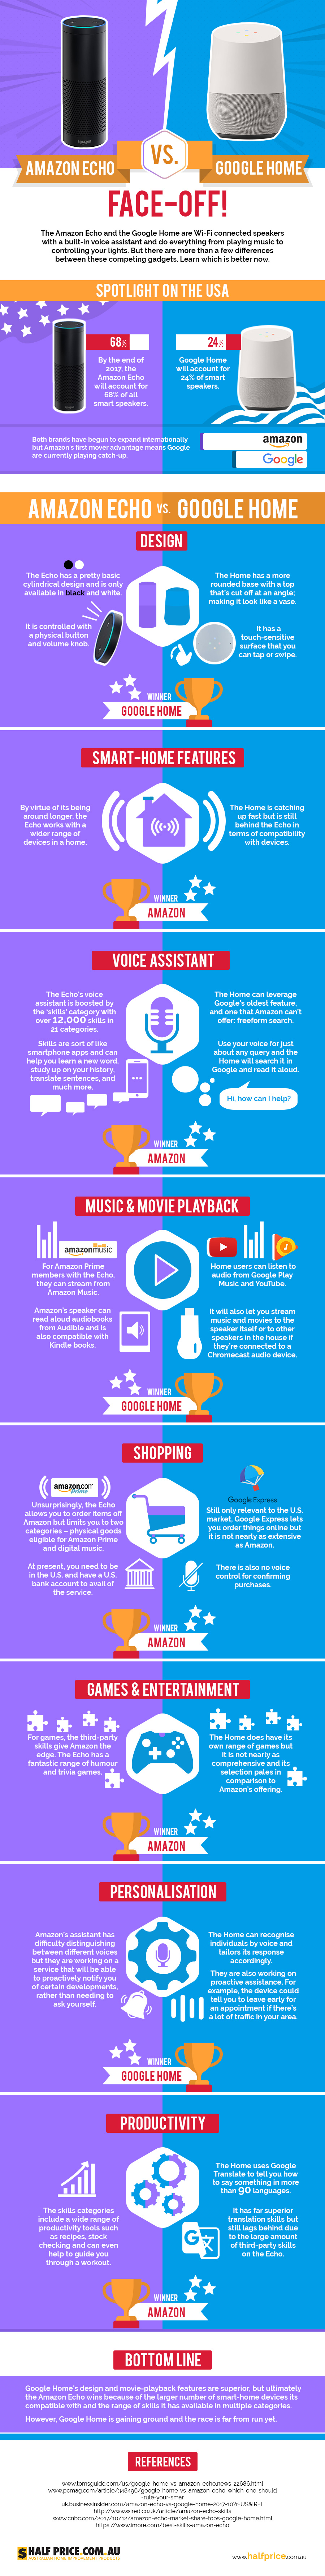 Amazon Echo Vs Google Home Faceoff infographic - Amazon-Echo Vs Google-Home